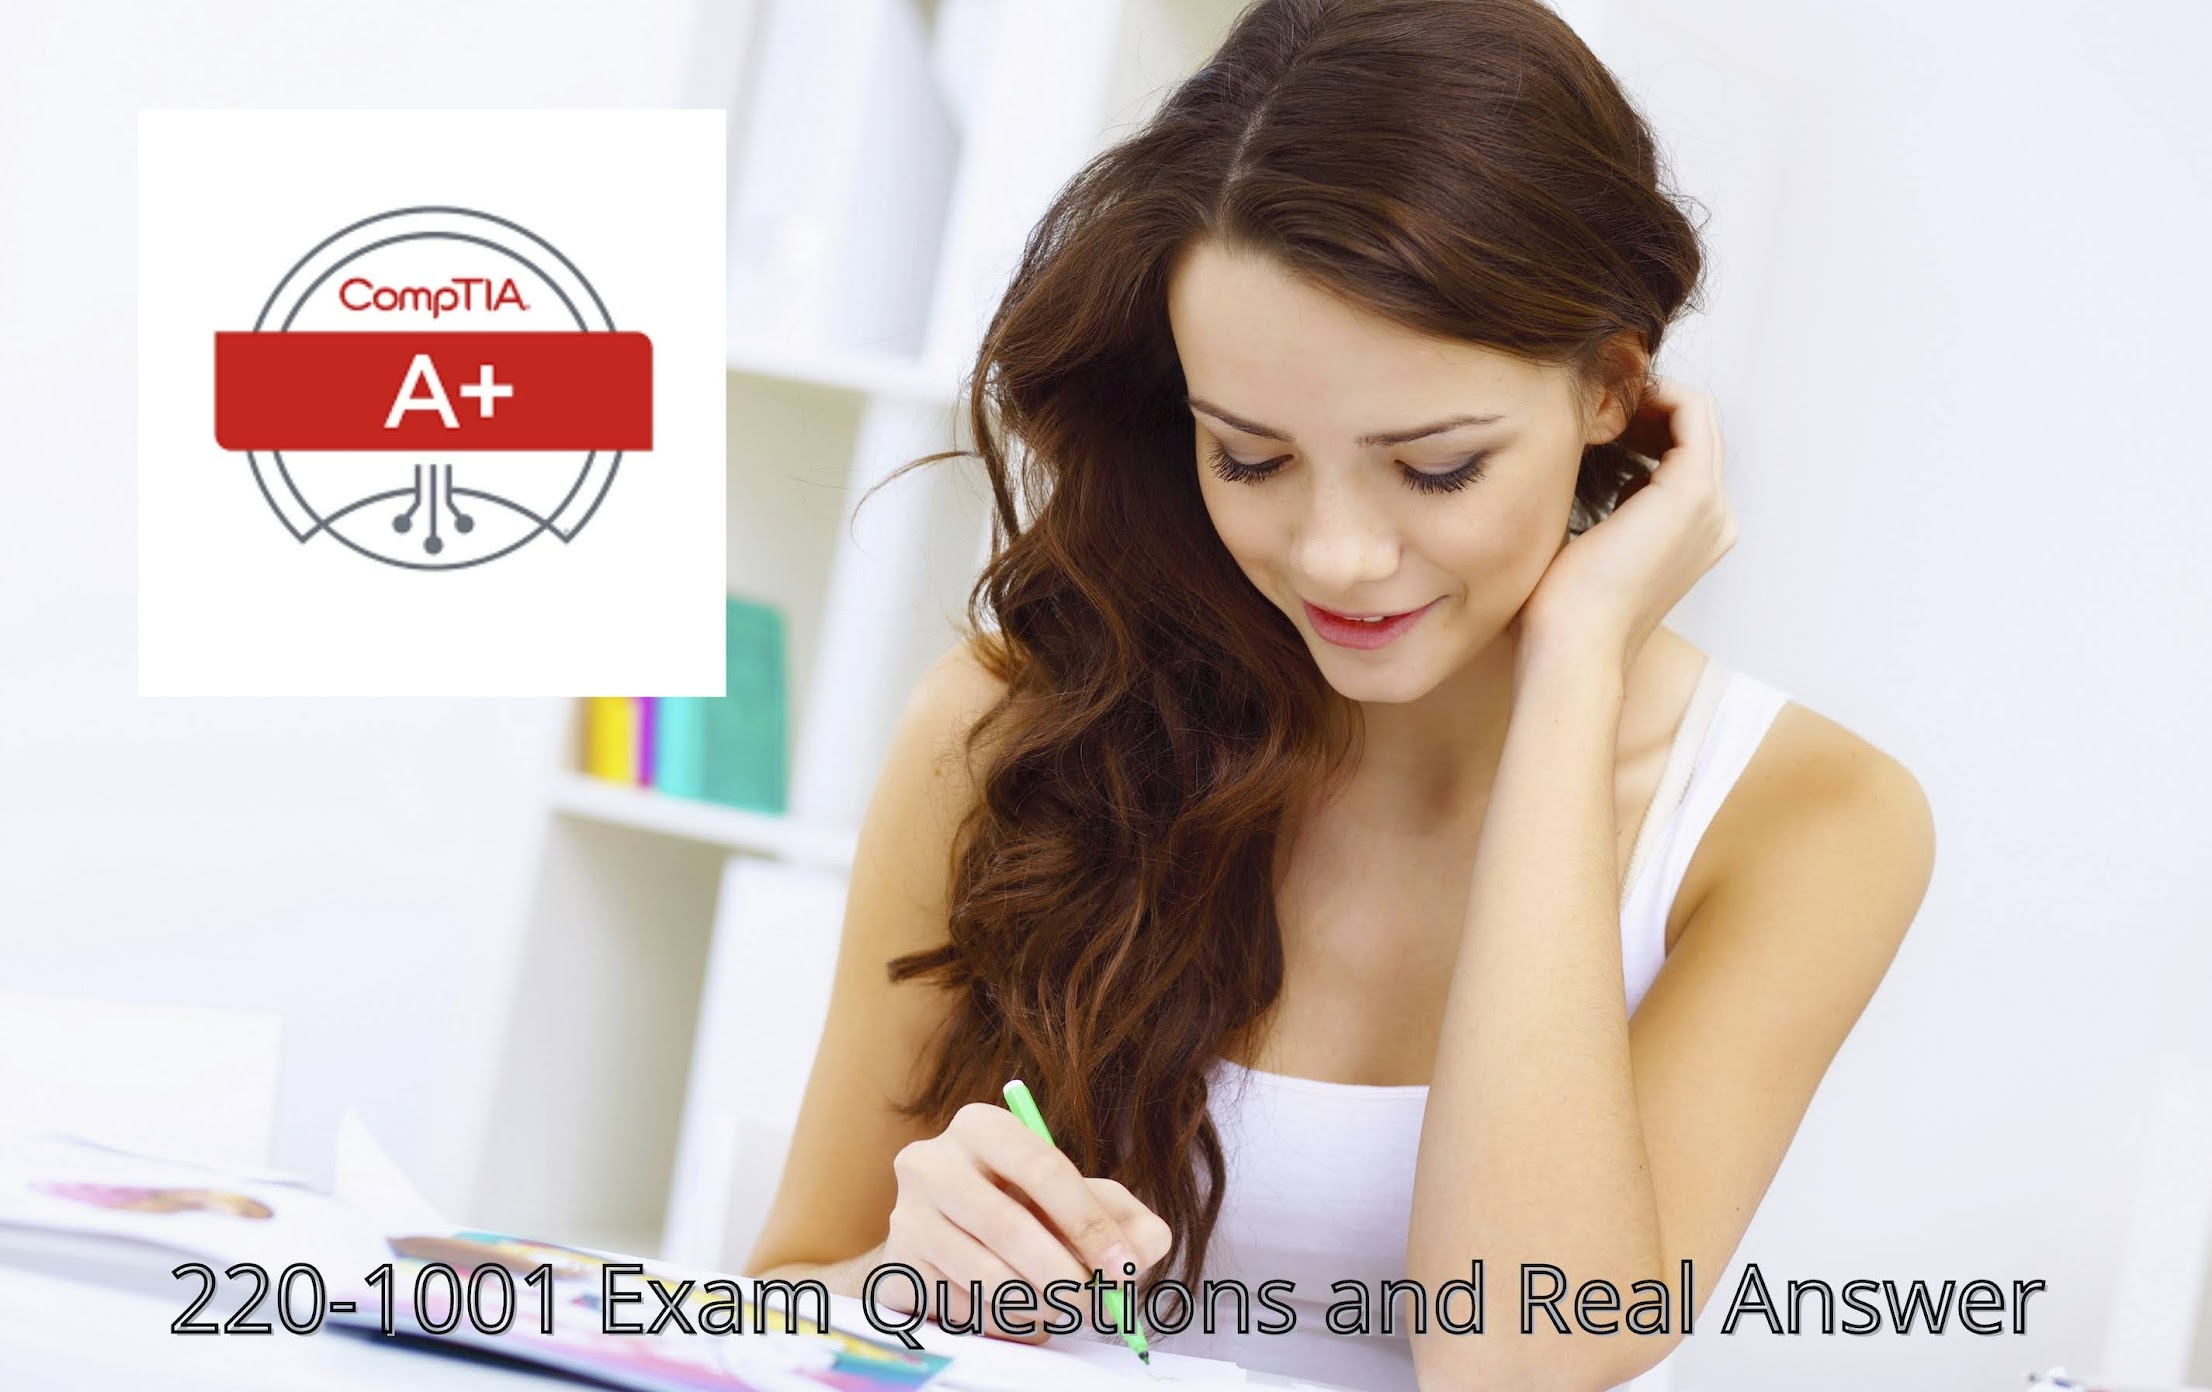 CompTIA A+ Core 1 (220-1001) Exam Questions and Answers - Page 3